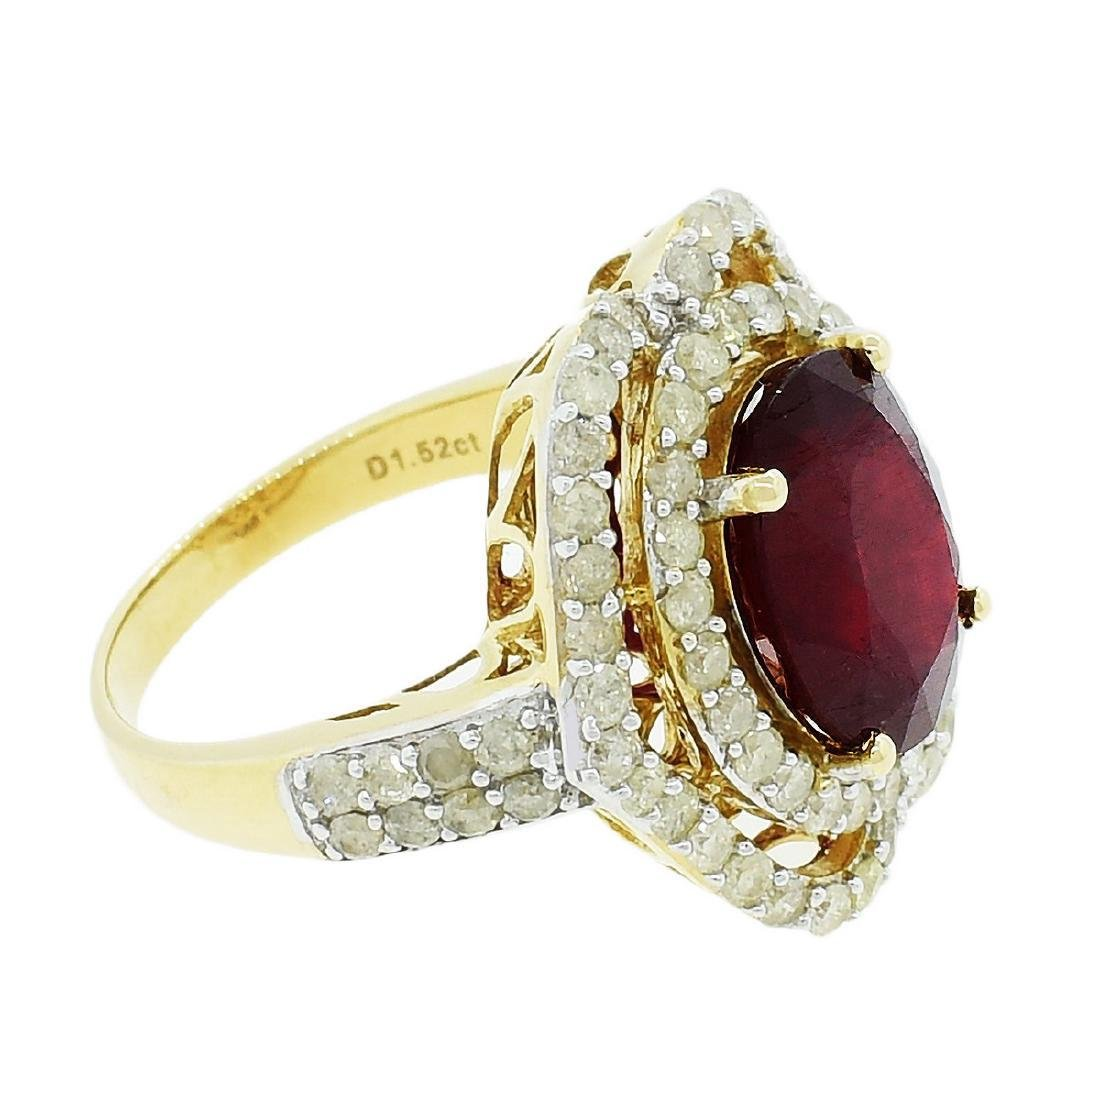 14K Yellow Gold 6.50ct Ruby 1.52ctw Diamond Ring - 5